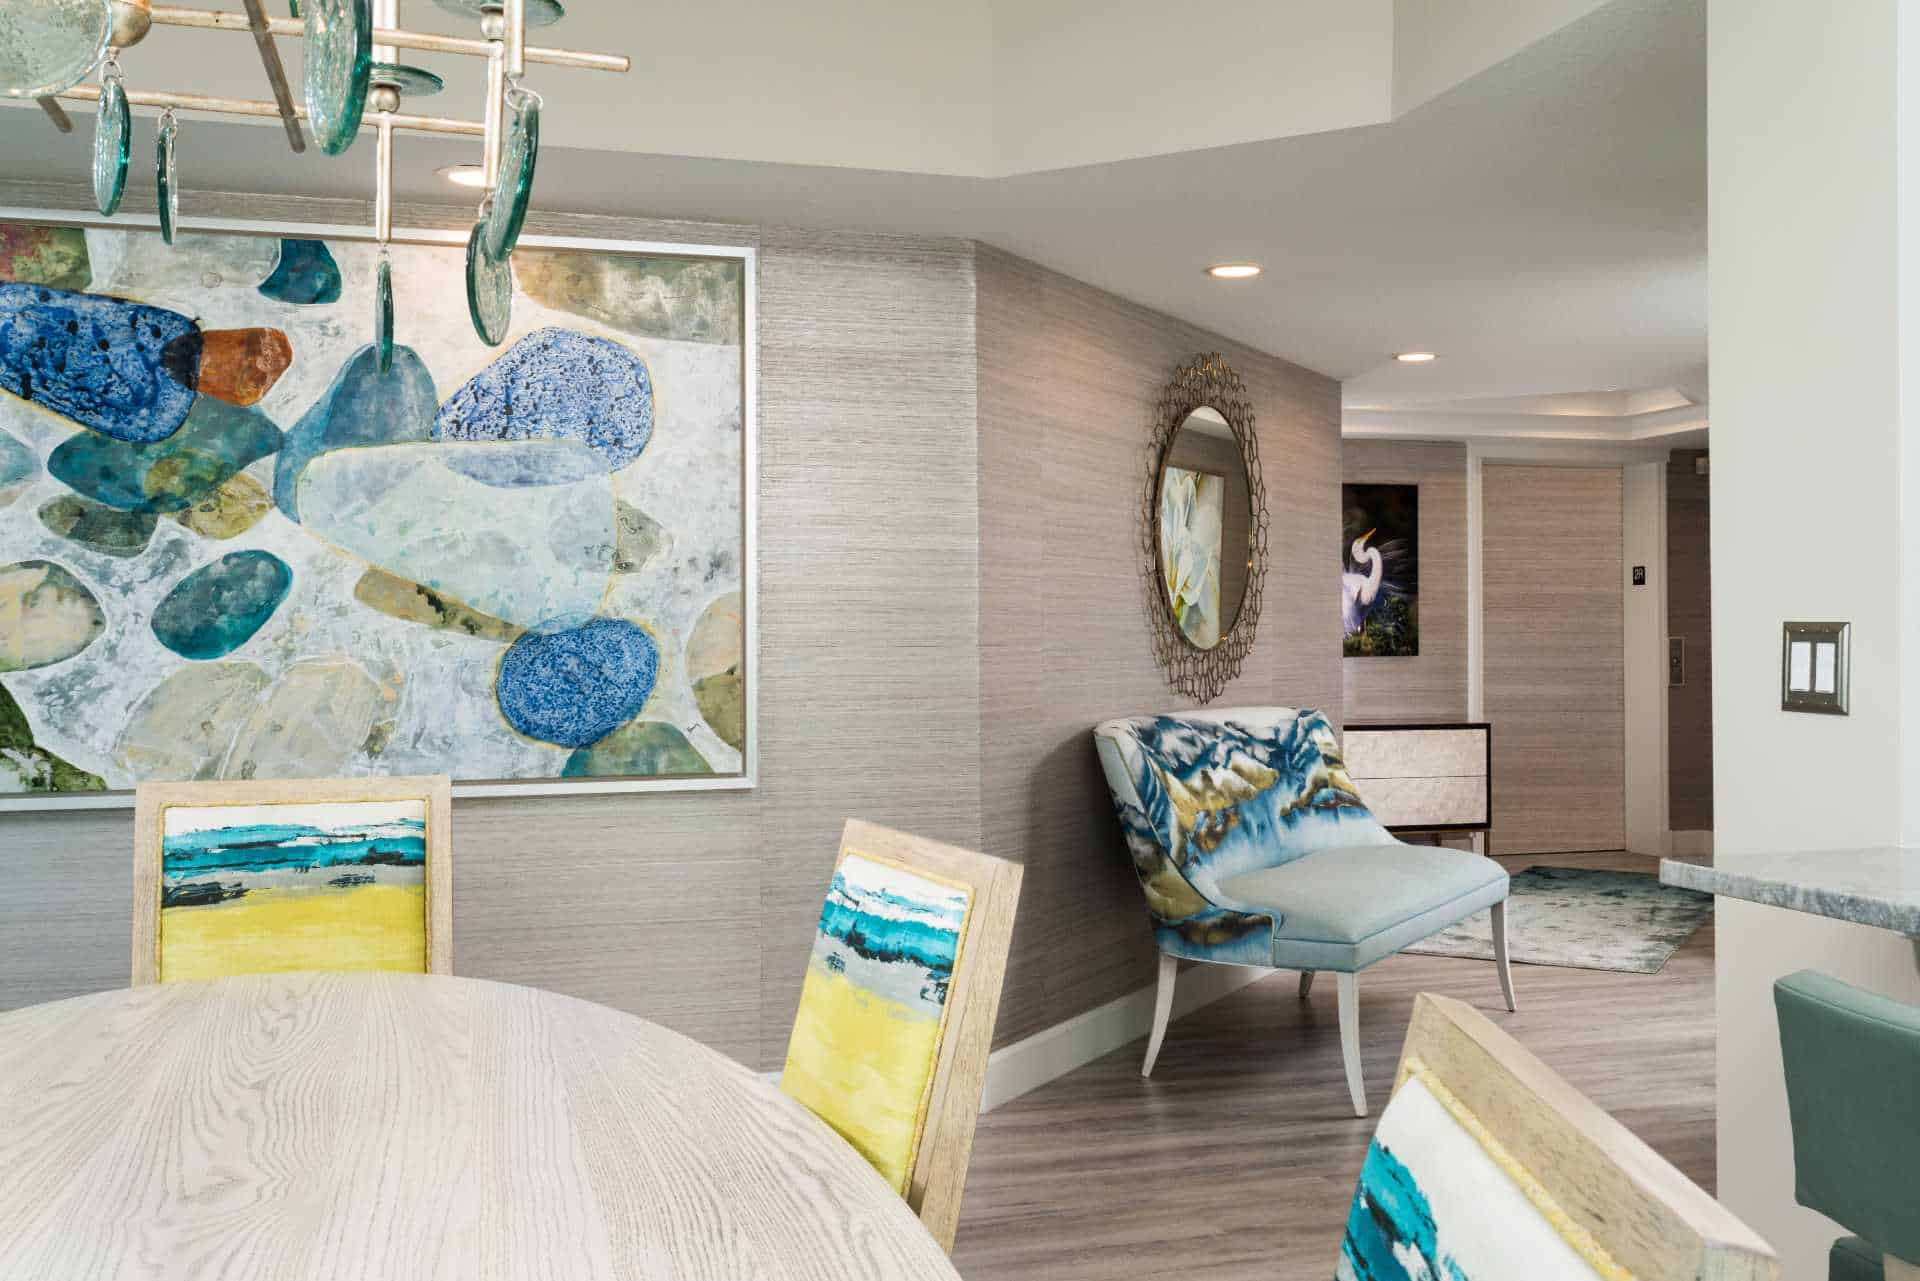 An open floorplan entryway with various oceanic decorations